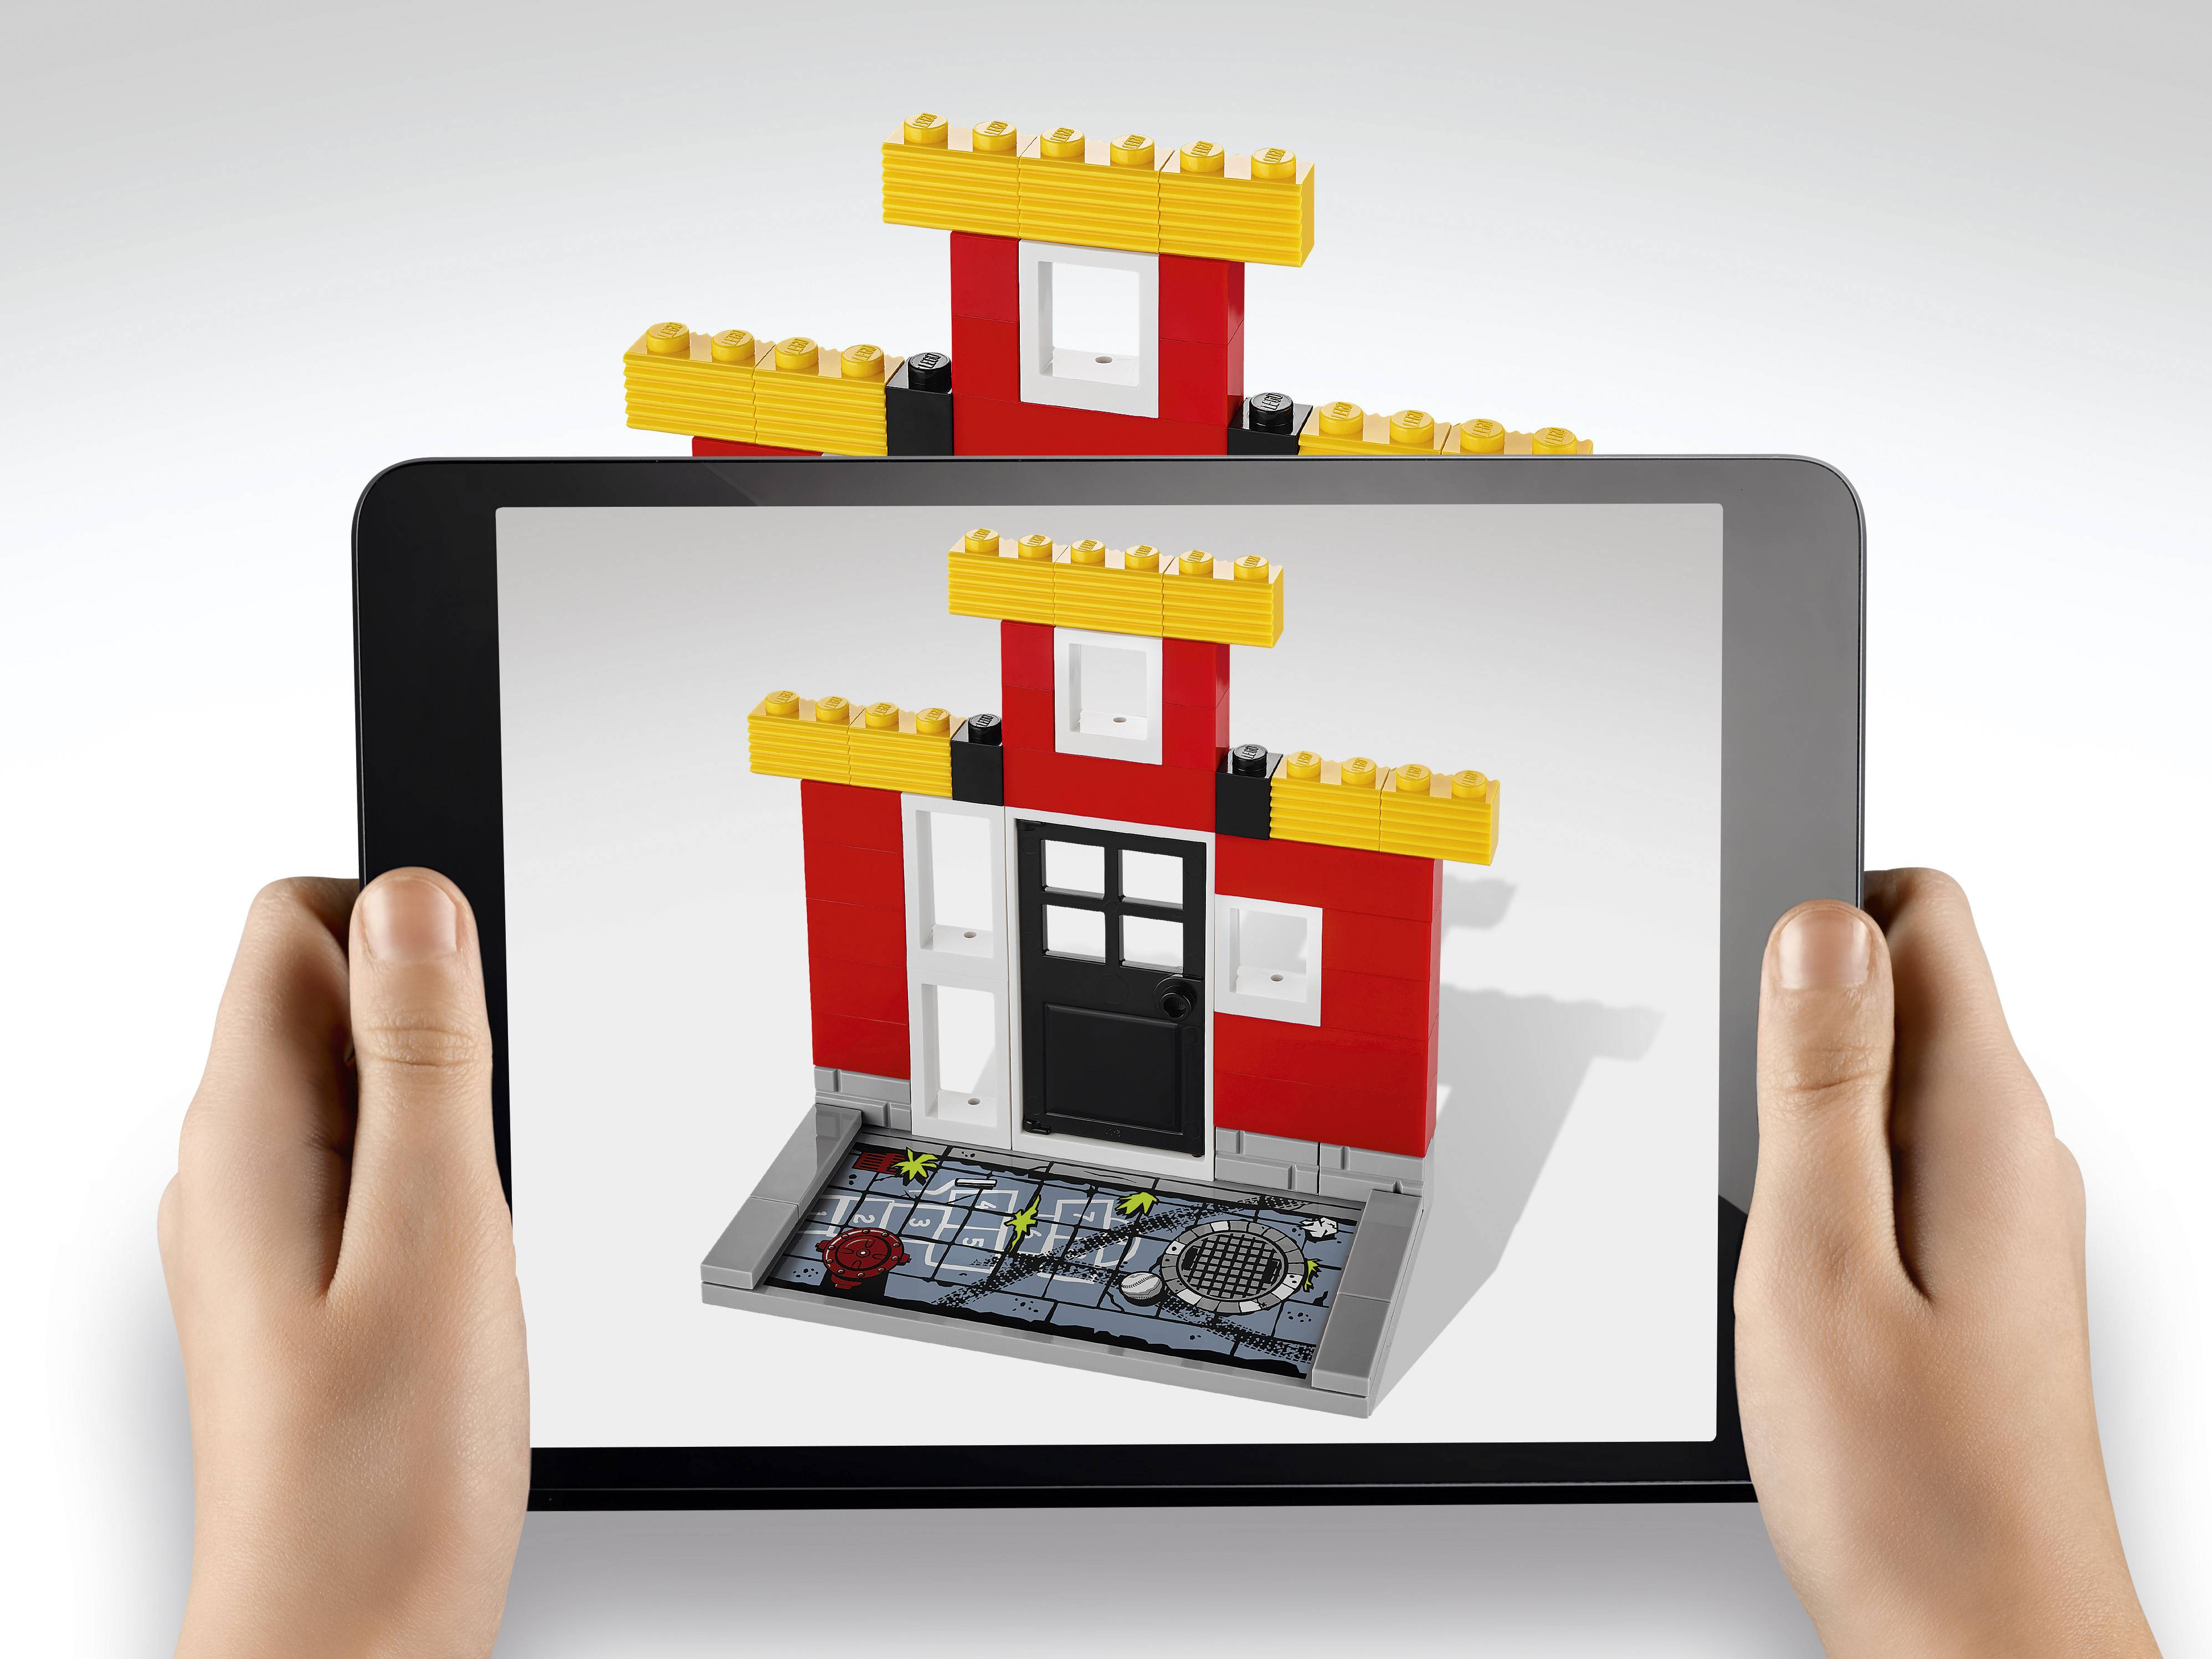 This undated image provided by Lego shows a version of the Lego Fusion line, a play experience that combines traditional Lego brick play with familiar app-based game themes.